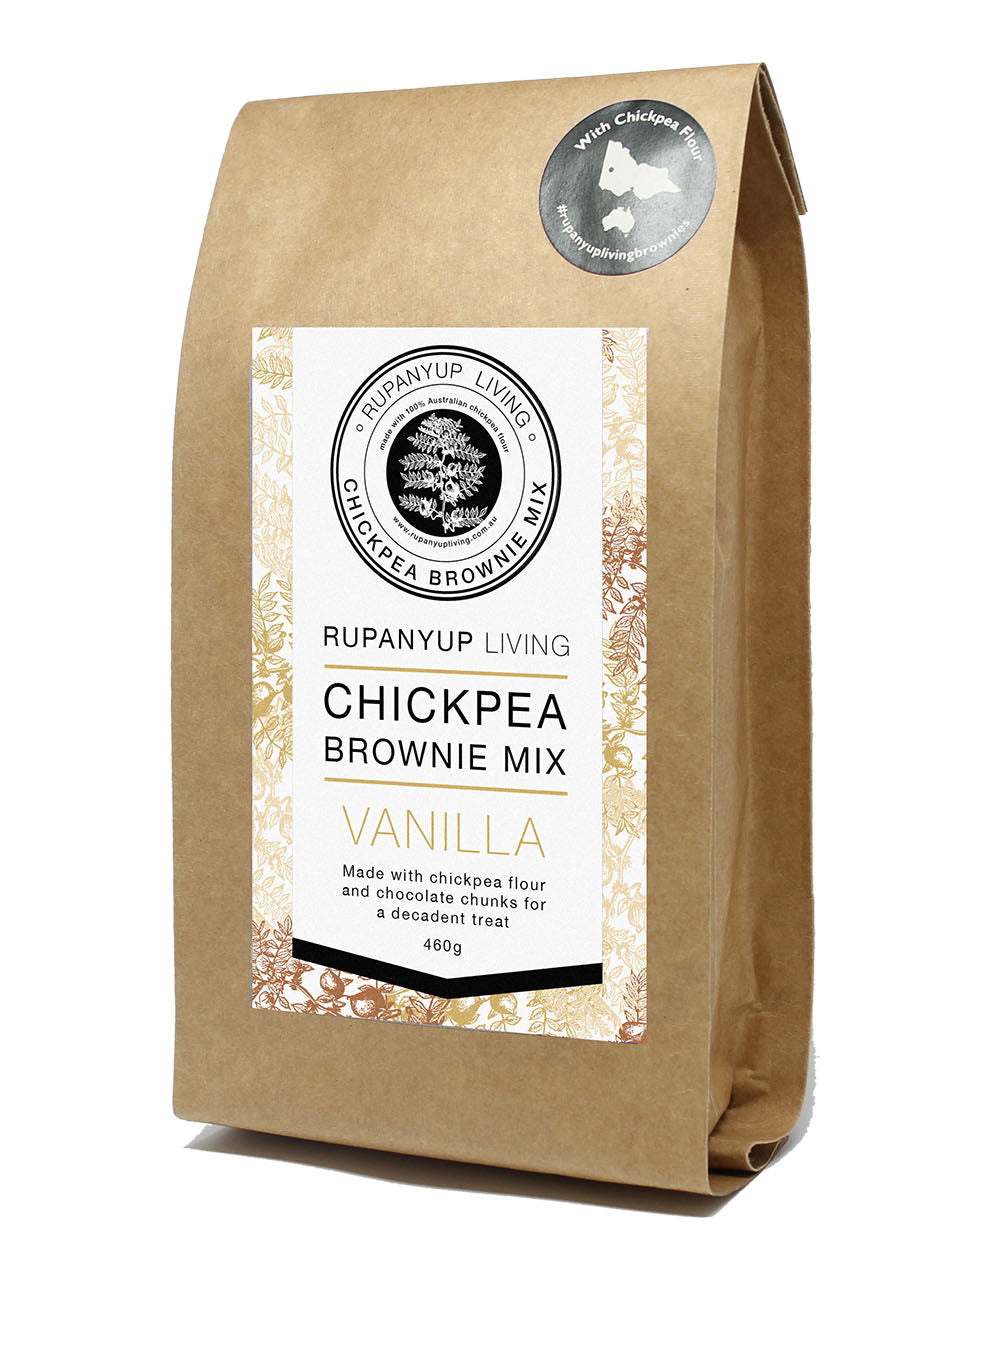 Chickpea Brownie Mix - Vanilla